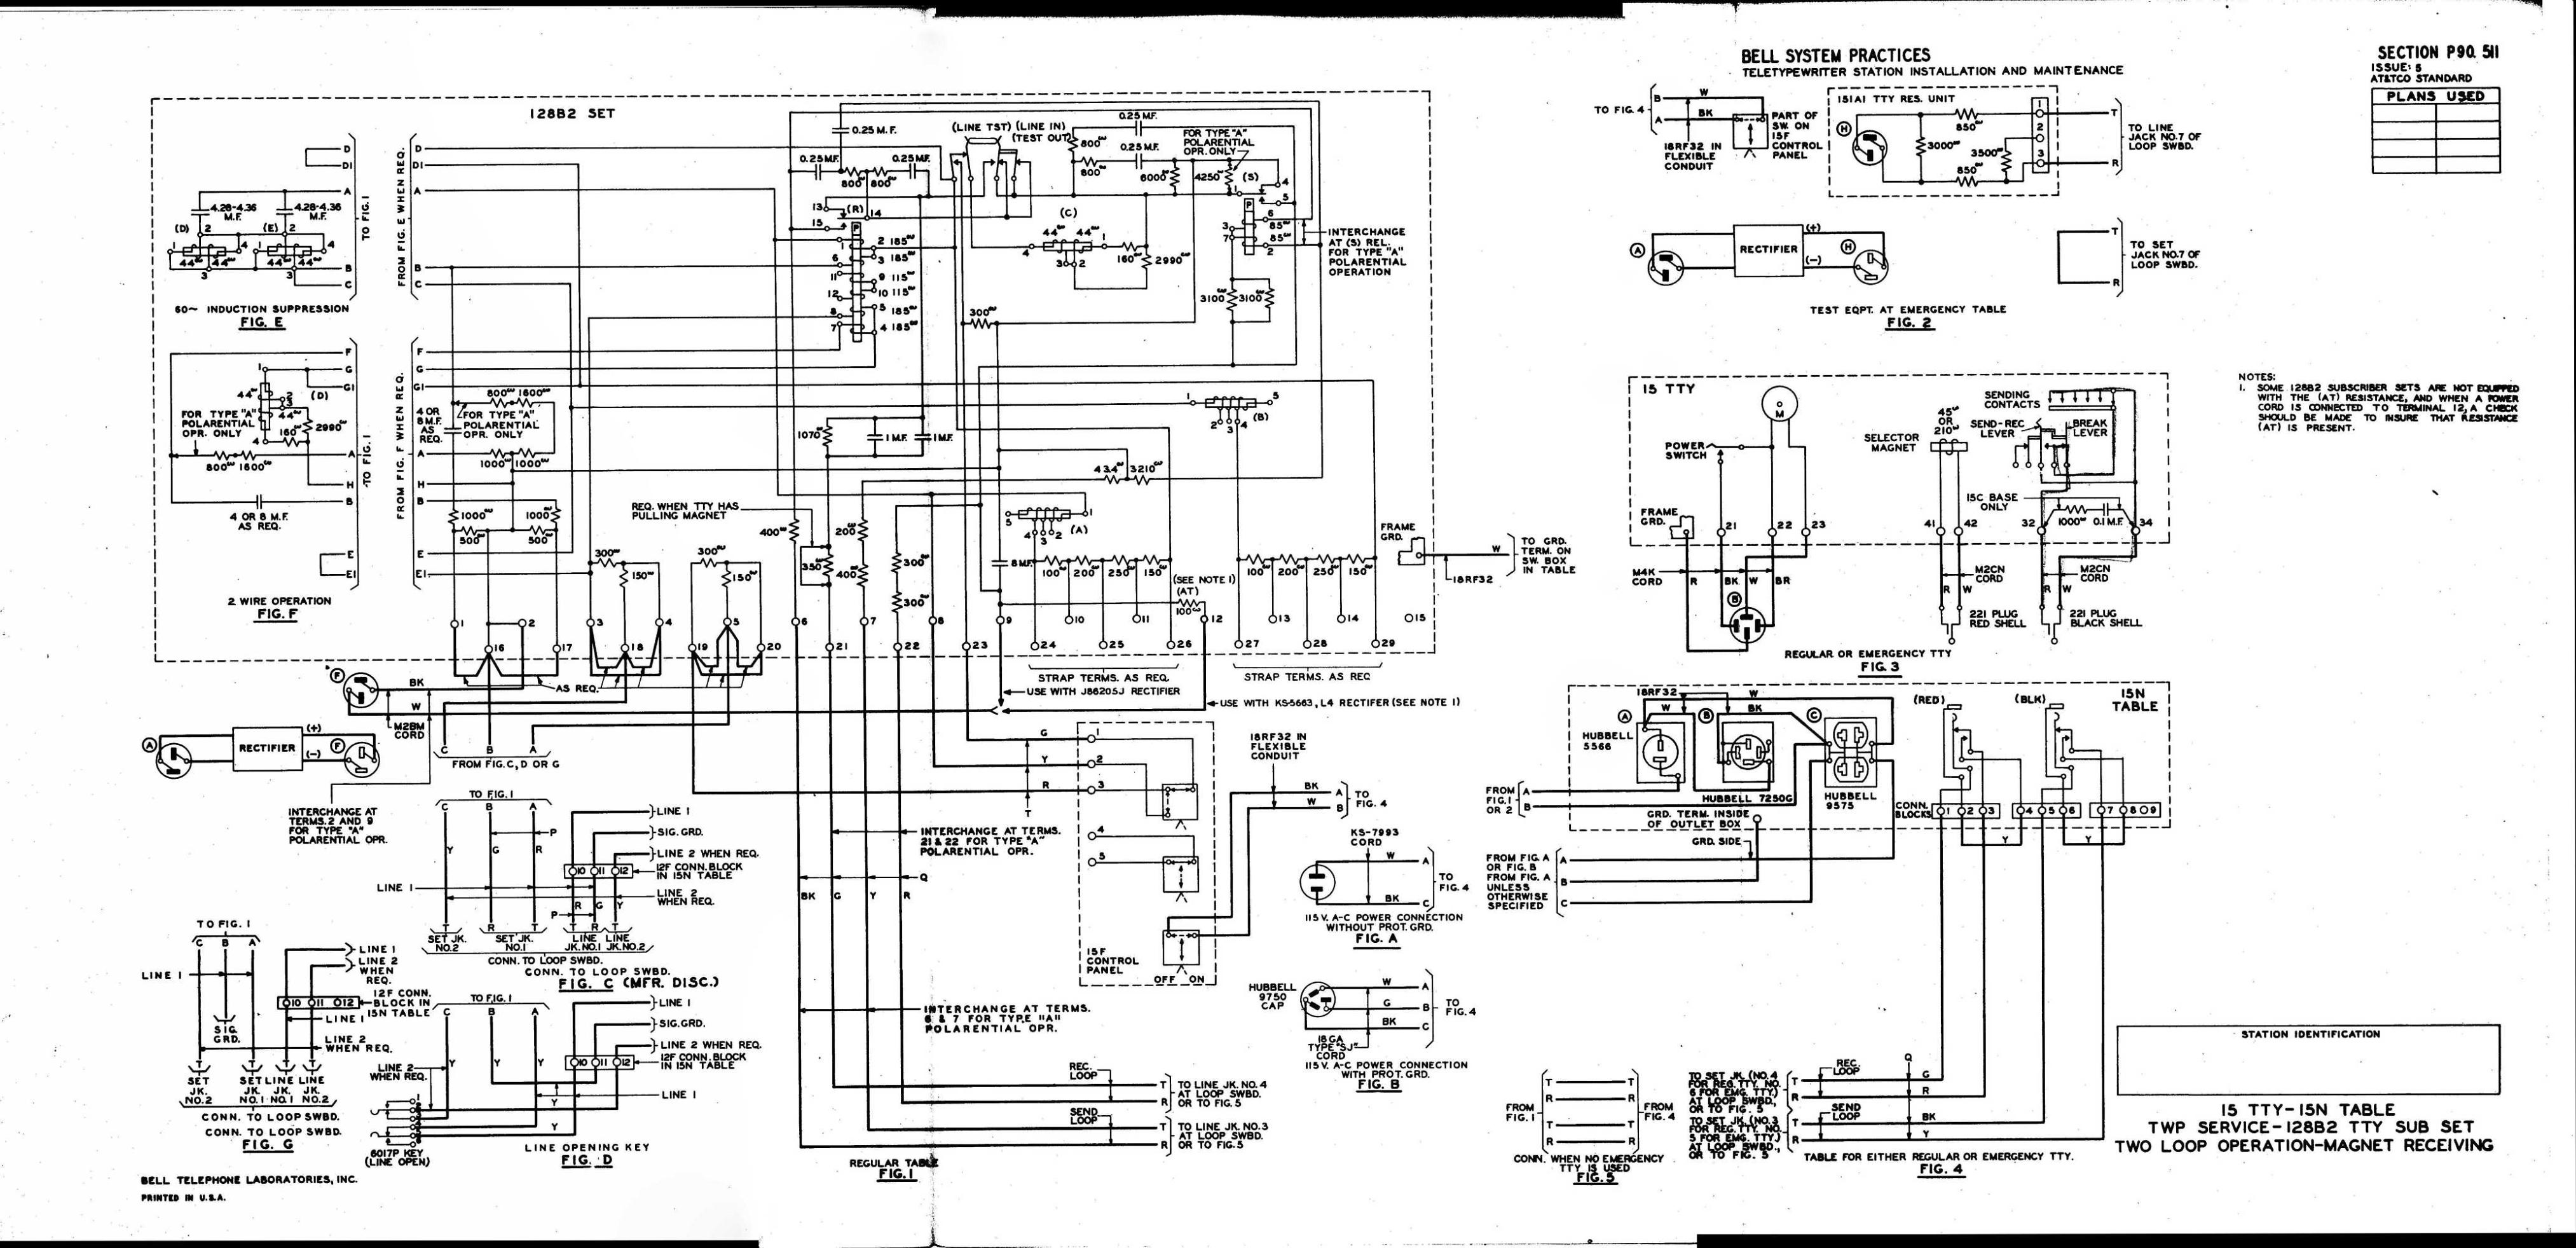 Teletype Wiring Diagrams And Schematics P90 Diagram 2 P90511 Link 15 Tty 15n Table 128b2 Sub Set Two Loop Twp Service